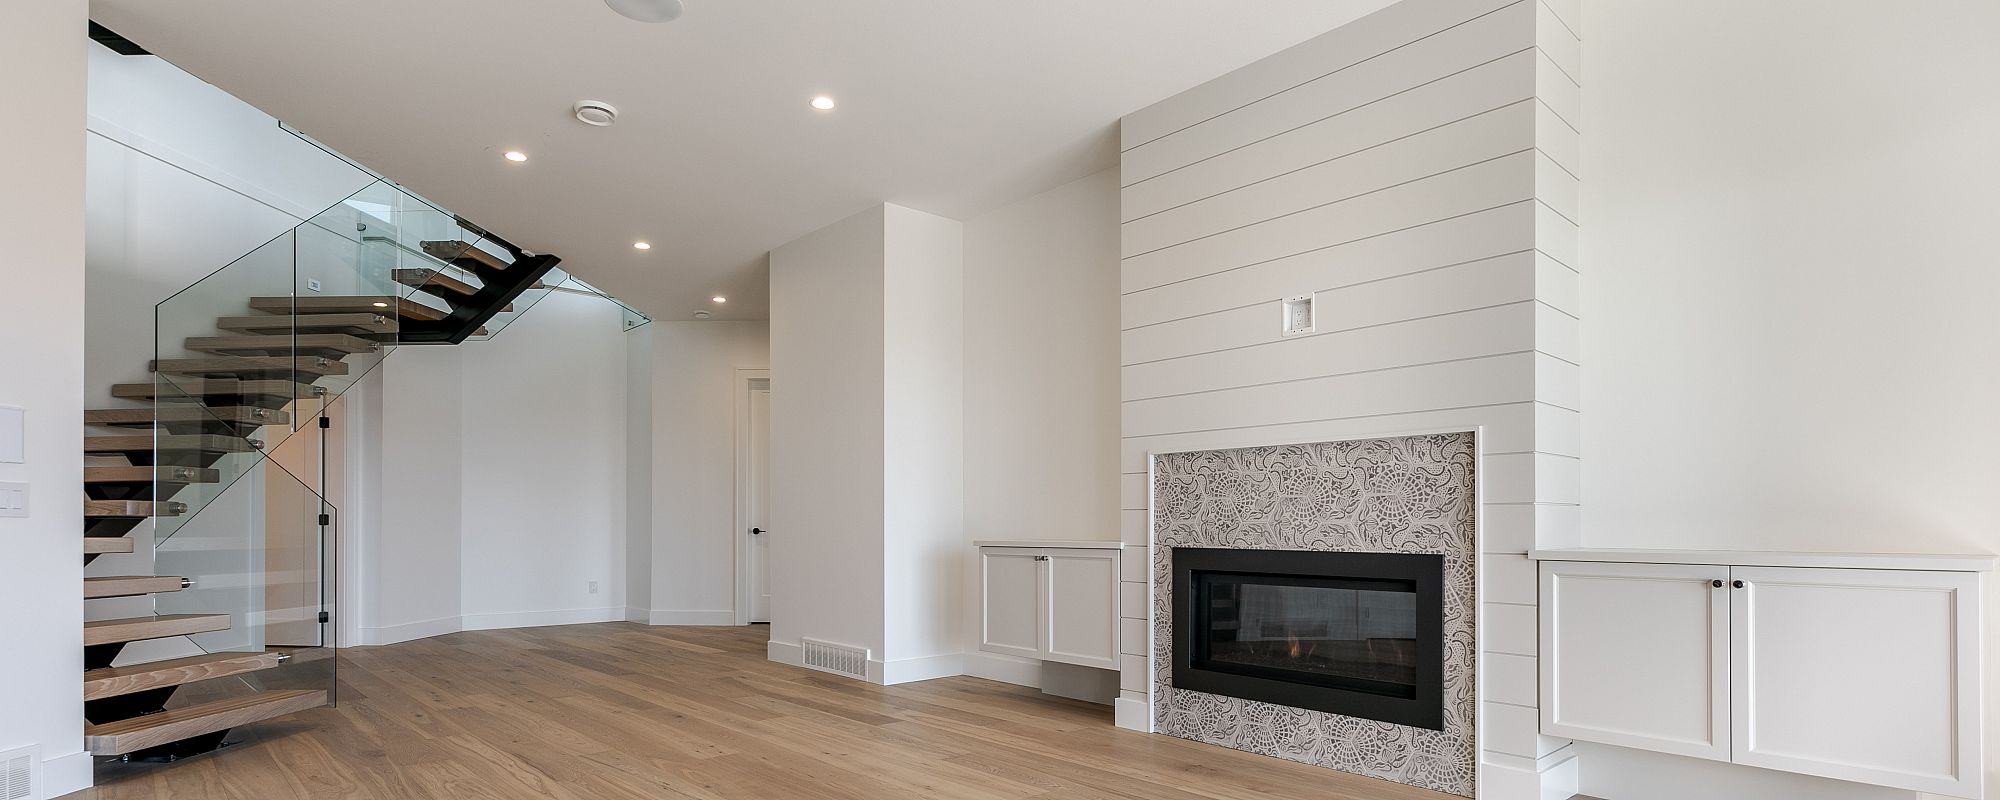 Paisley design fireplace with white framing and wooden steps in custom basement